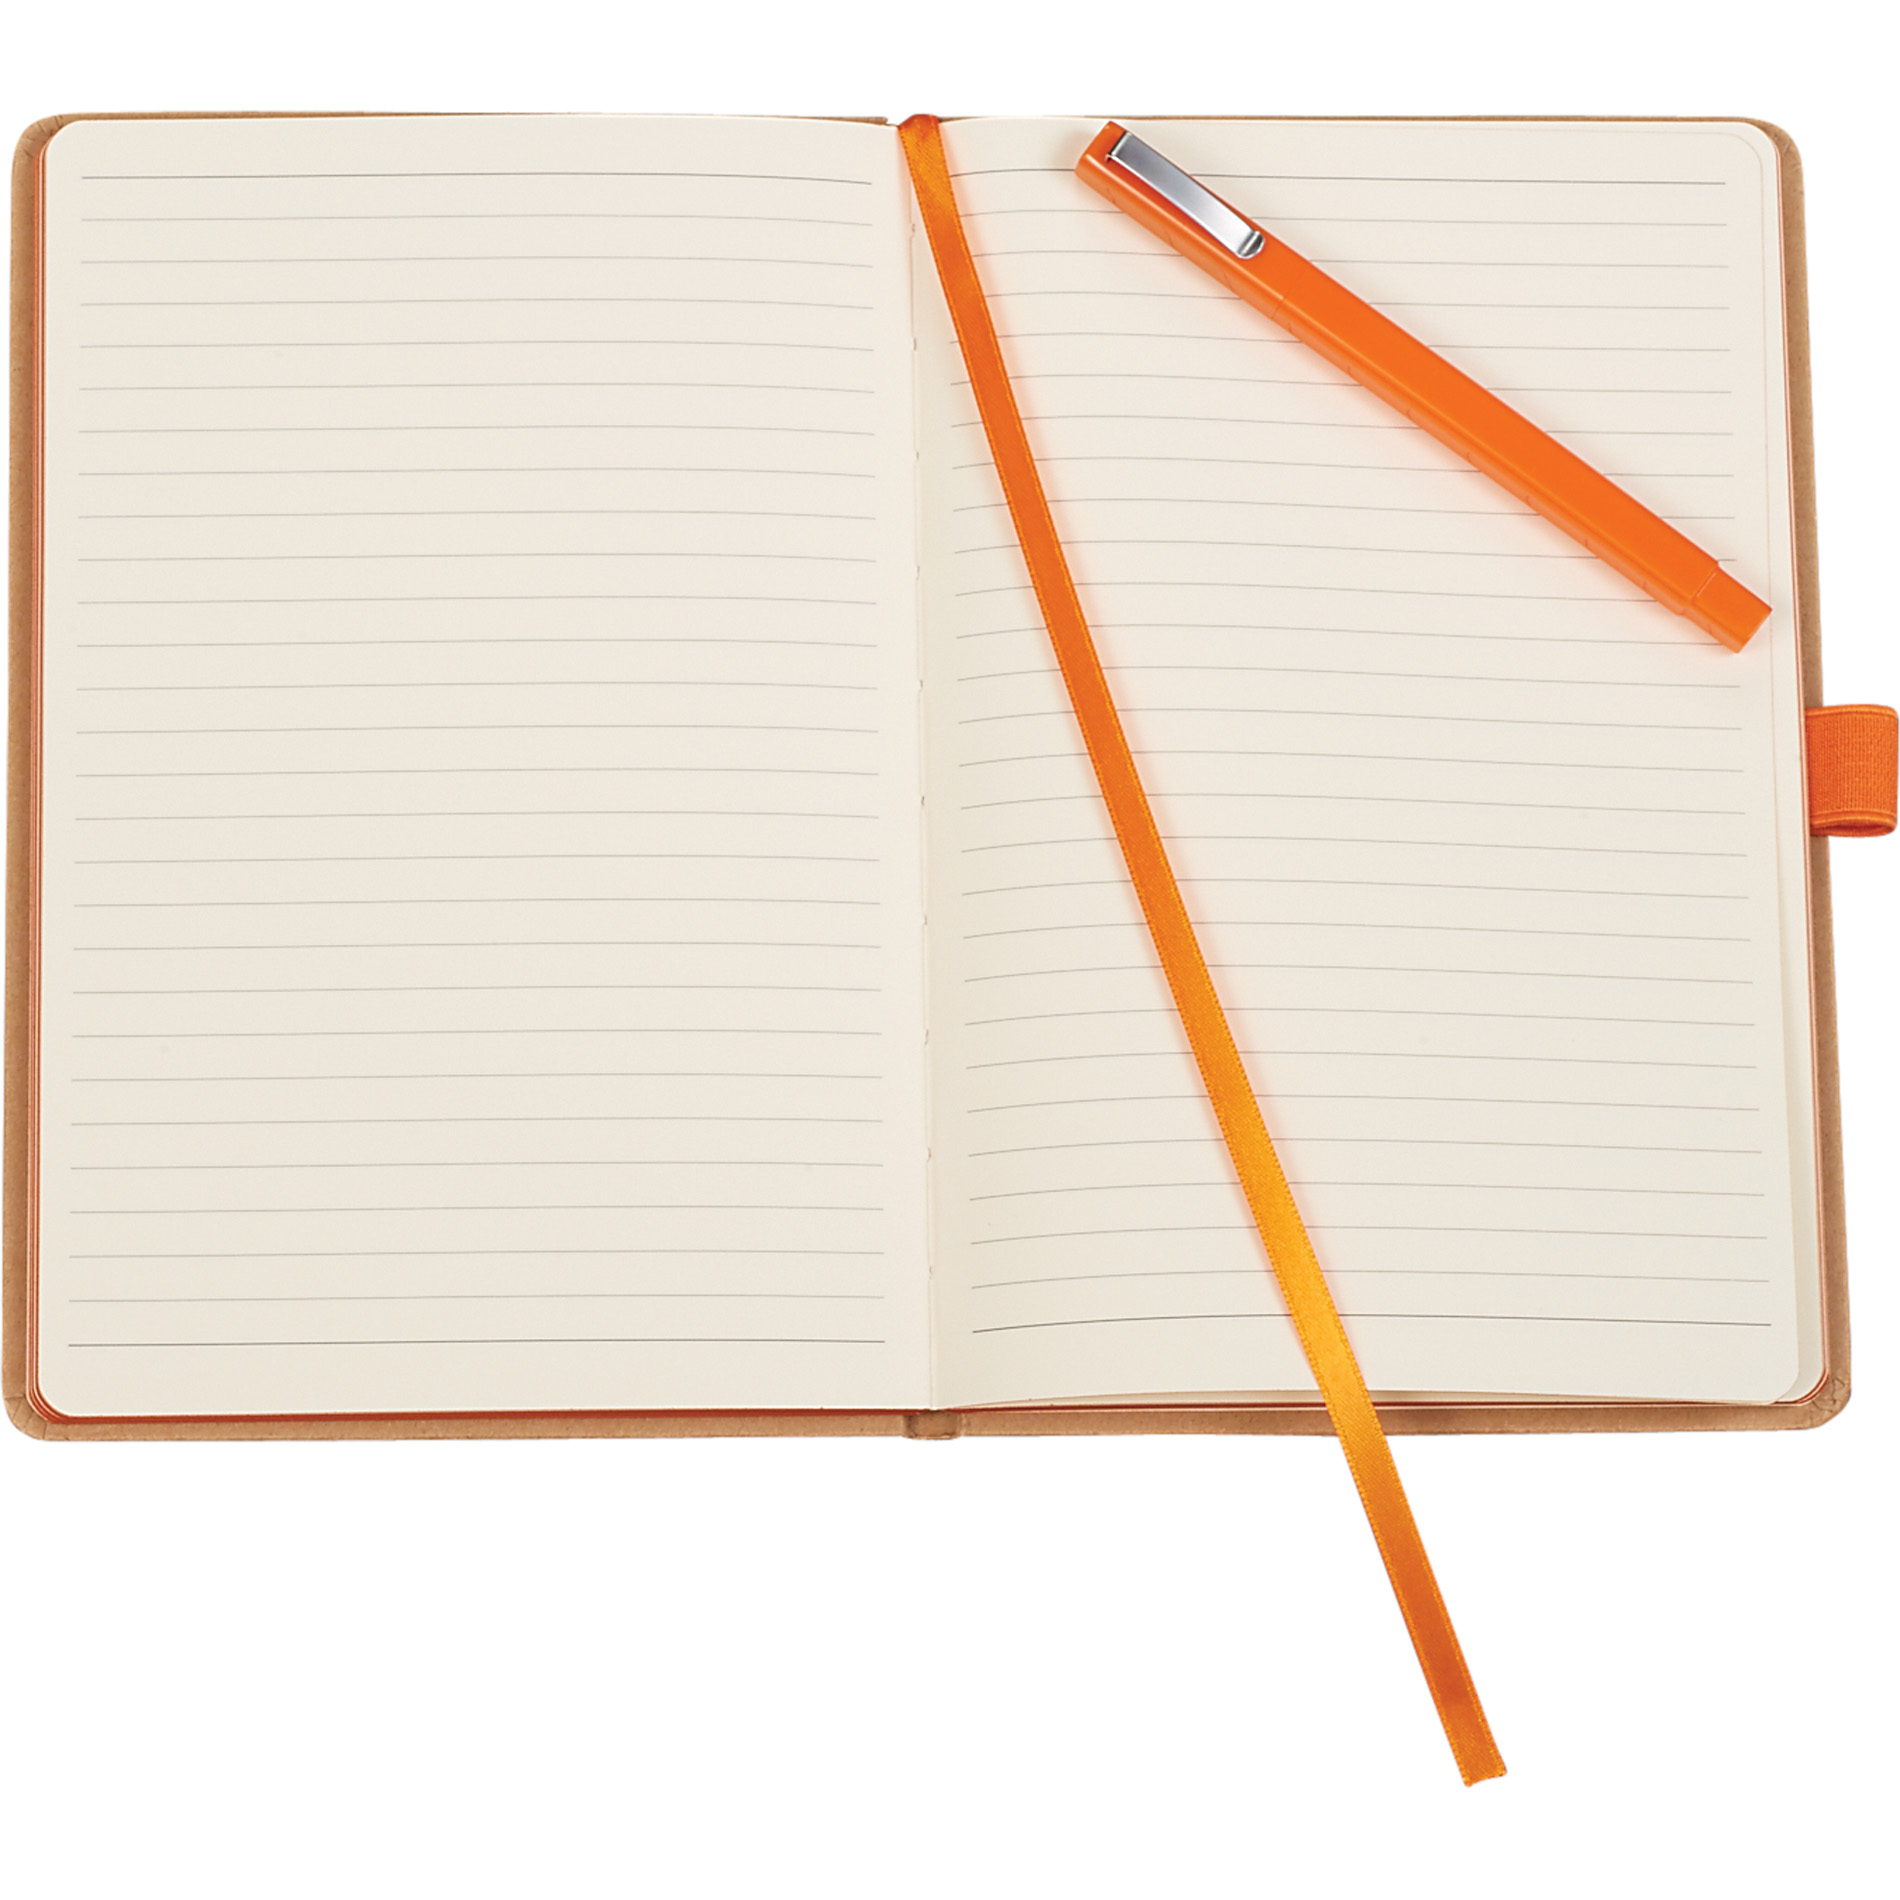 Eco-friendly journal set with matching pen opened.